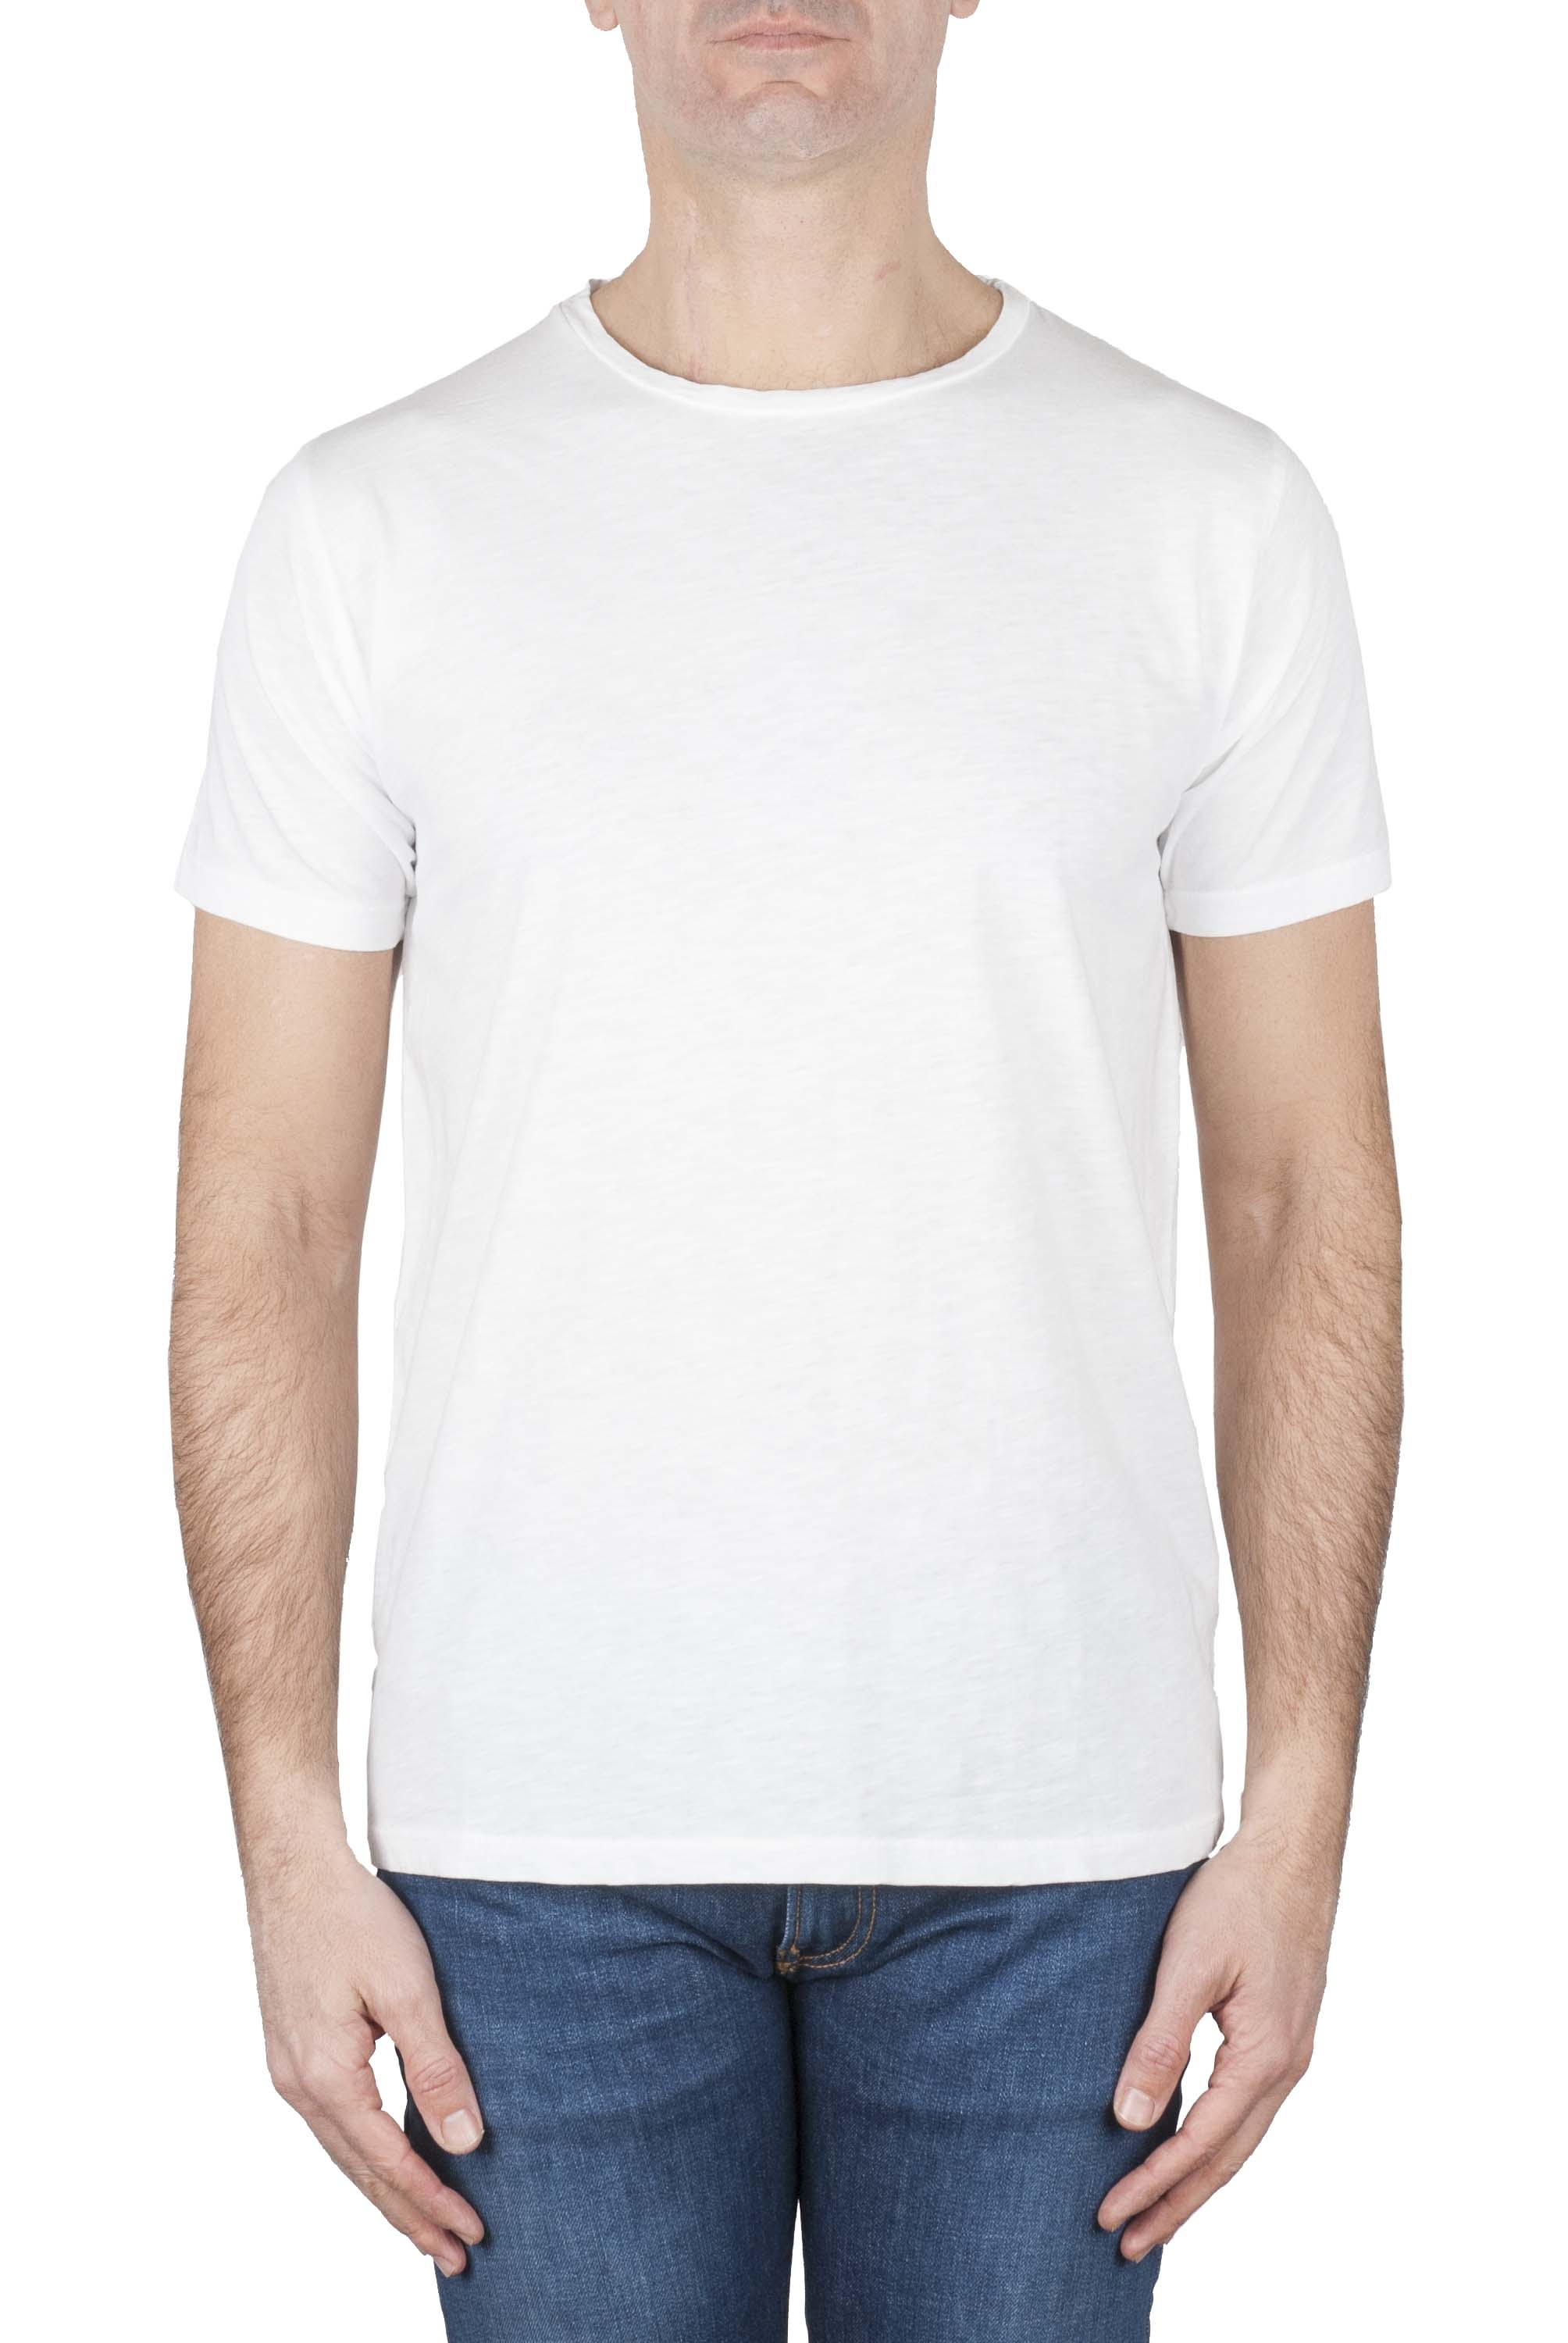 SBU 01980_2020SS Flamed cotton scoop neck t-shirt white 01